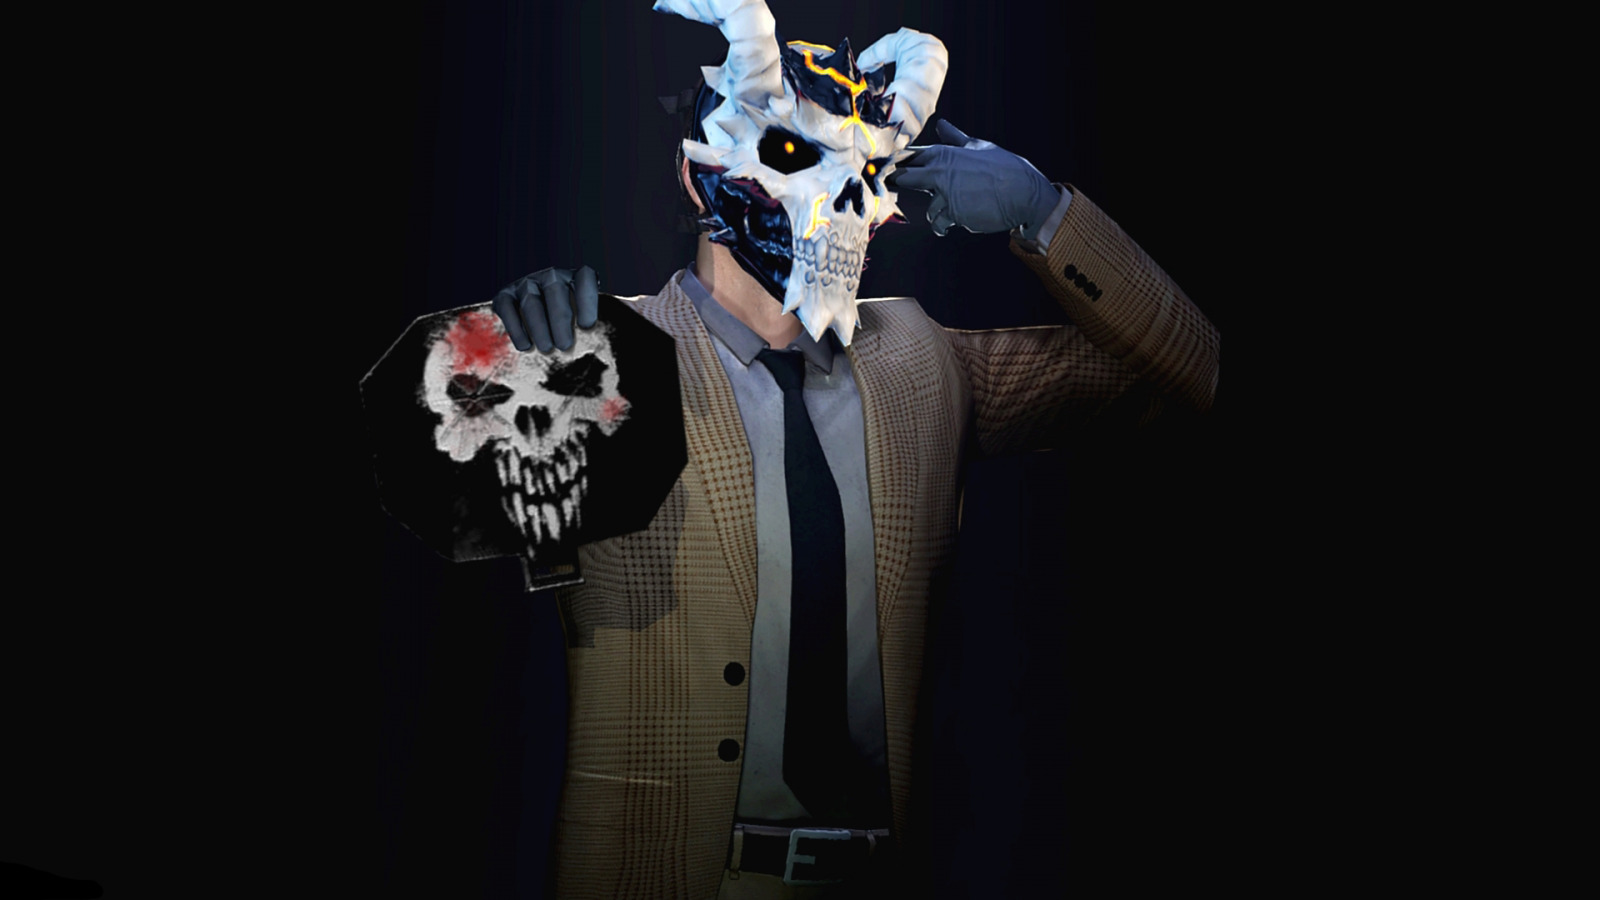 Payday 2 Mask iPhone 5 Wallpaper (640x1136) | Best Games ...